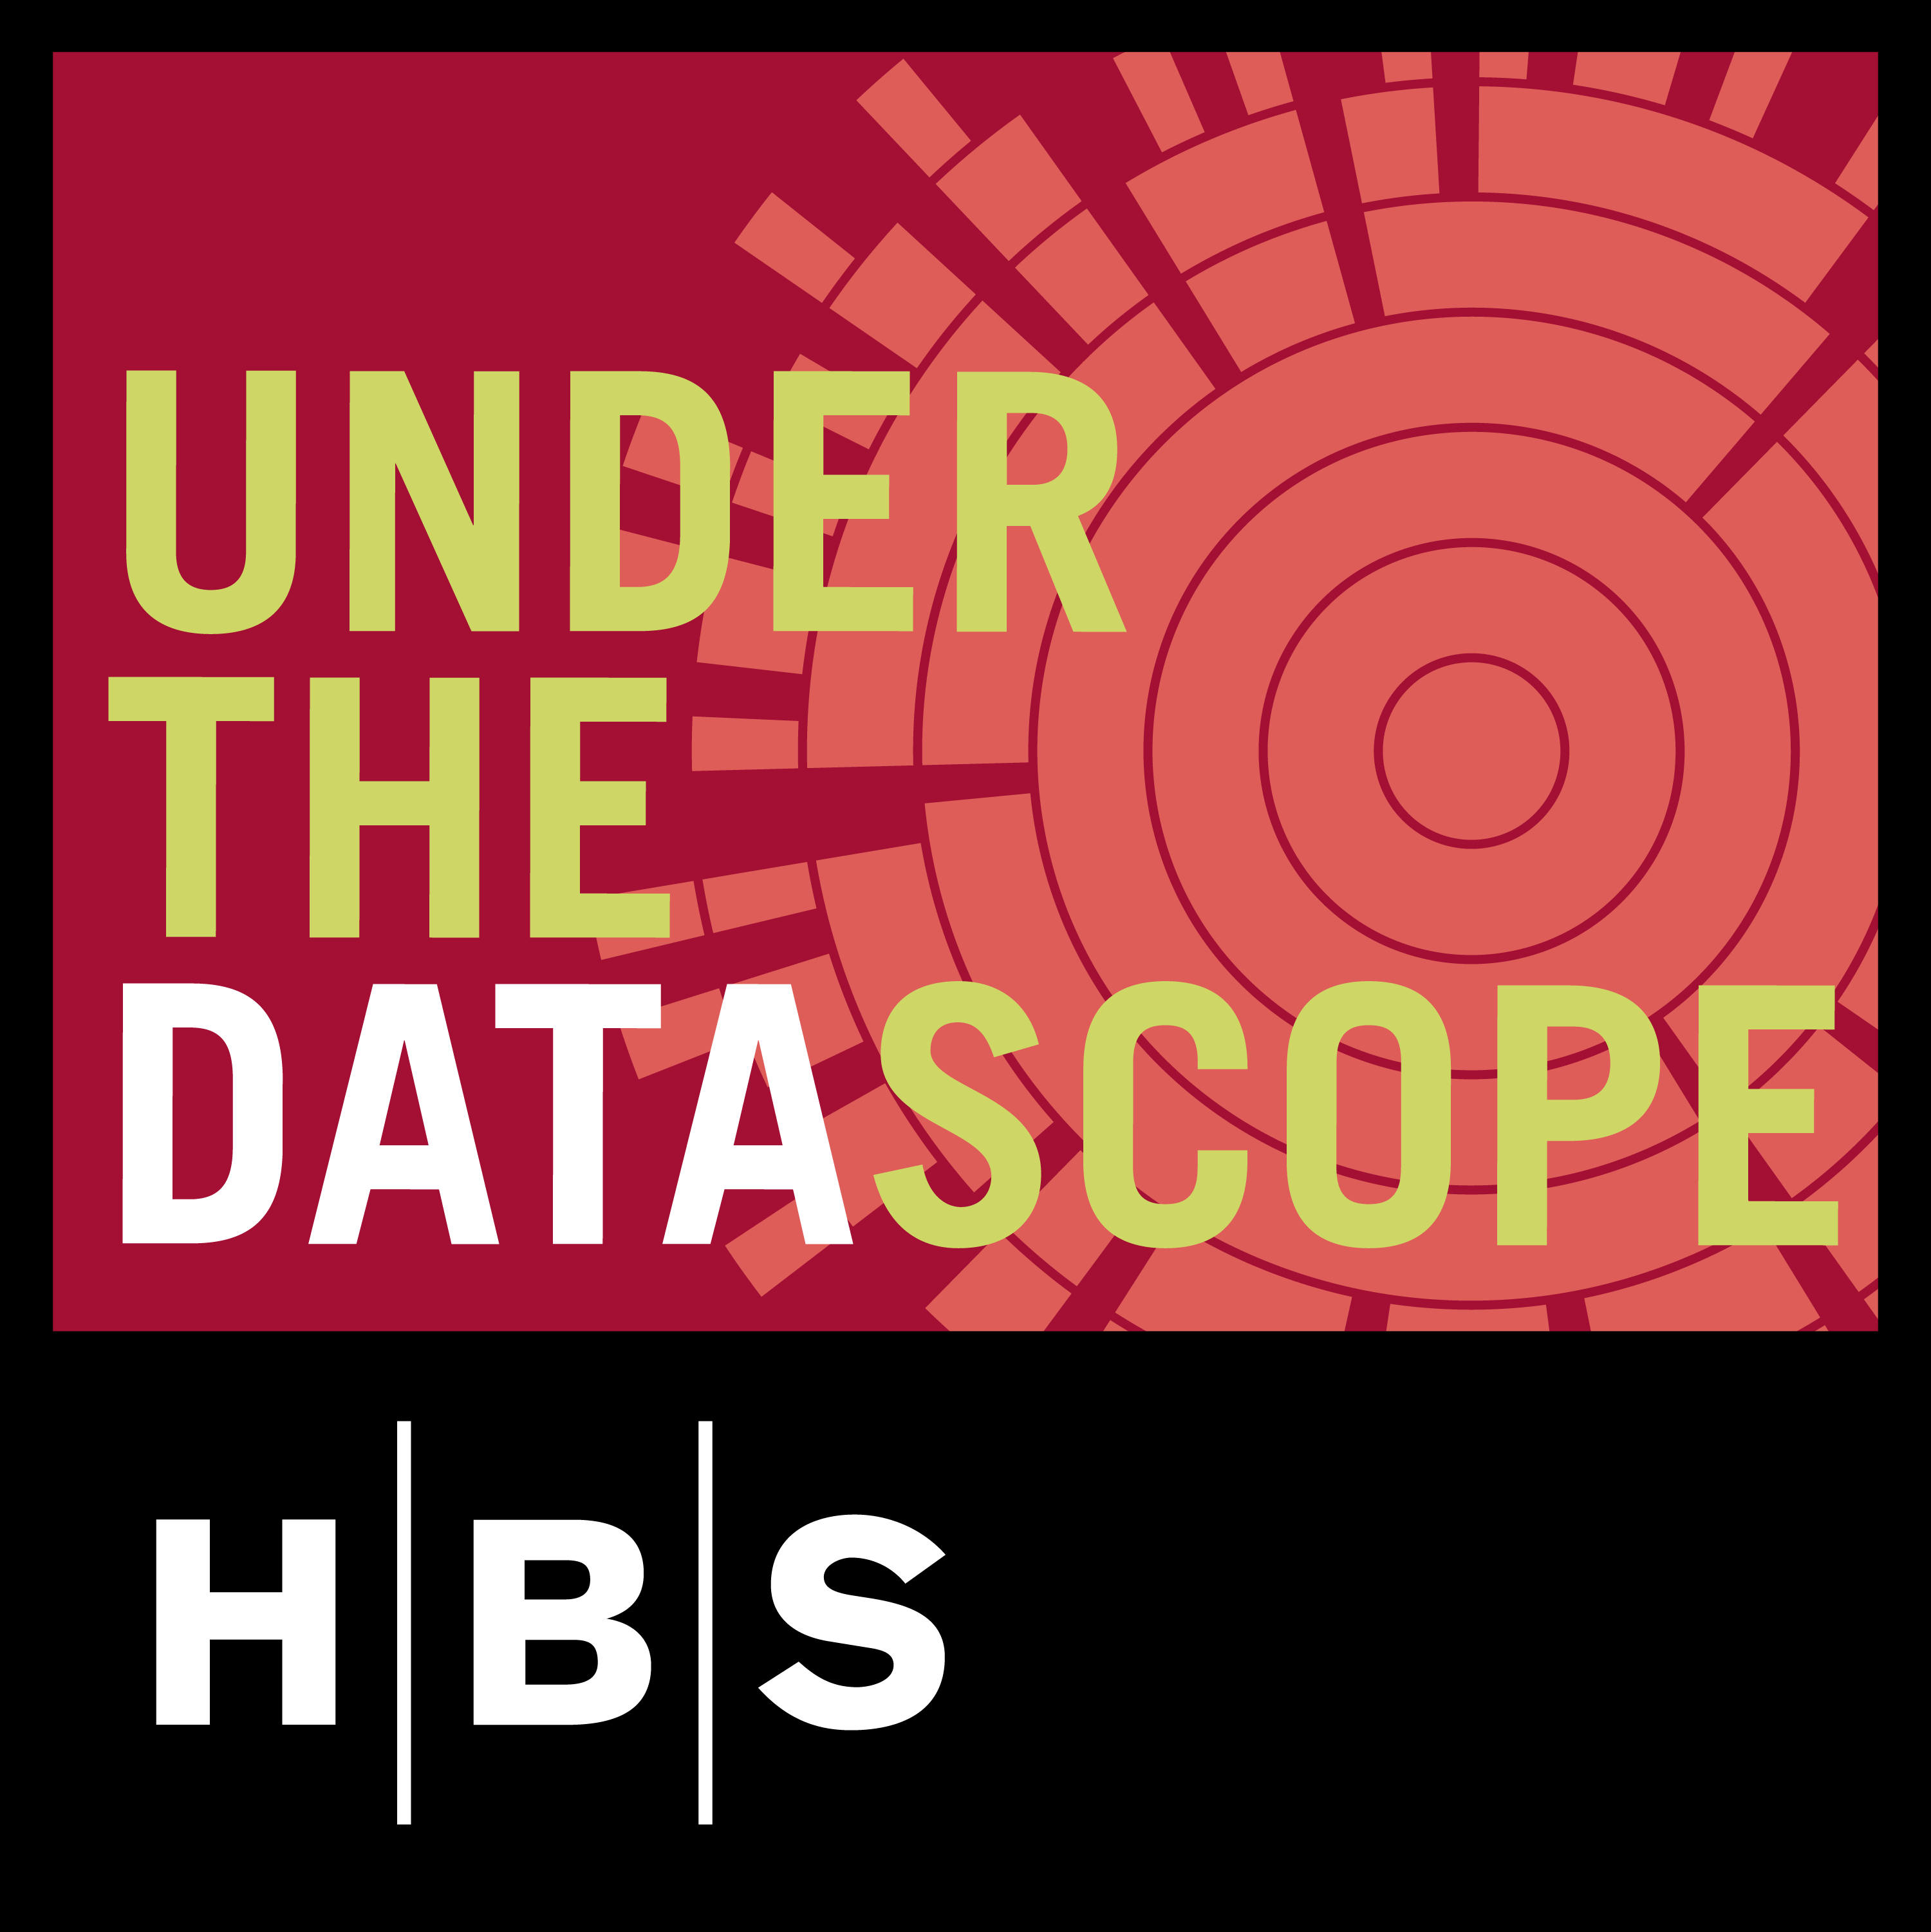 Trailer: Introducing Under the DataScope